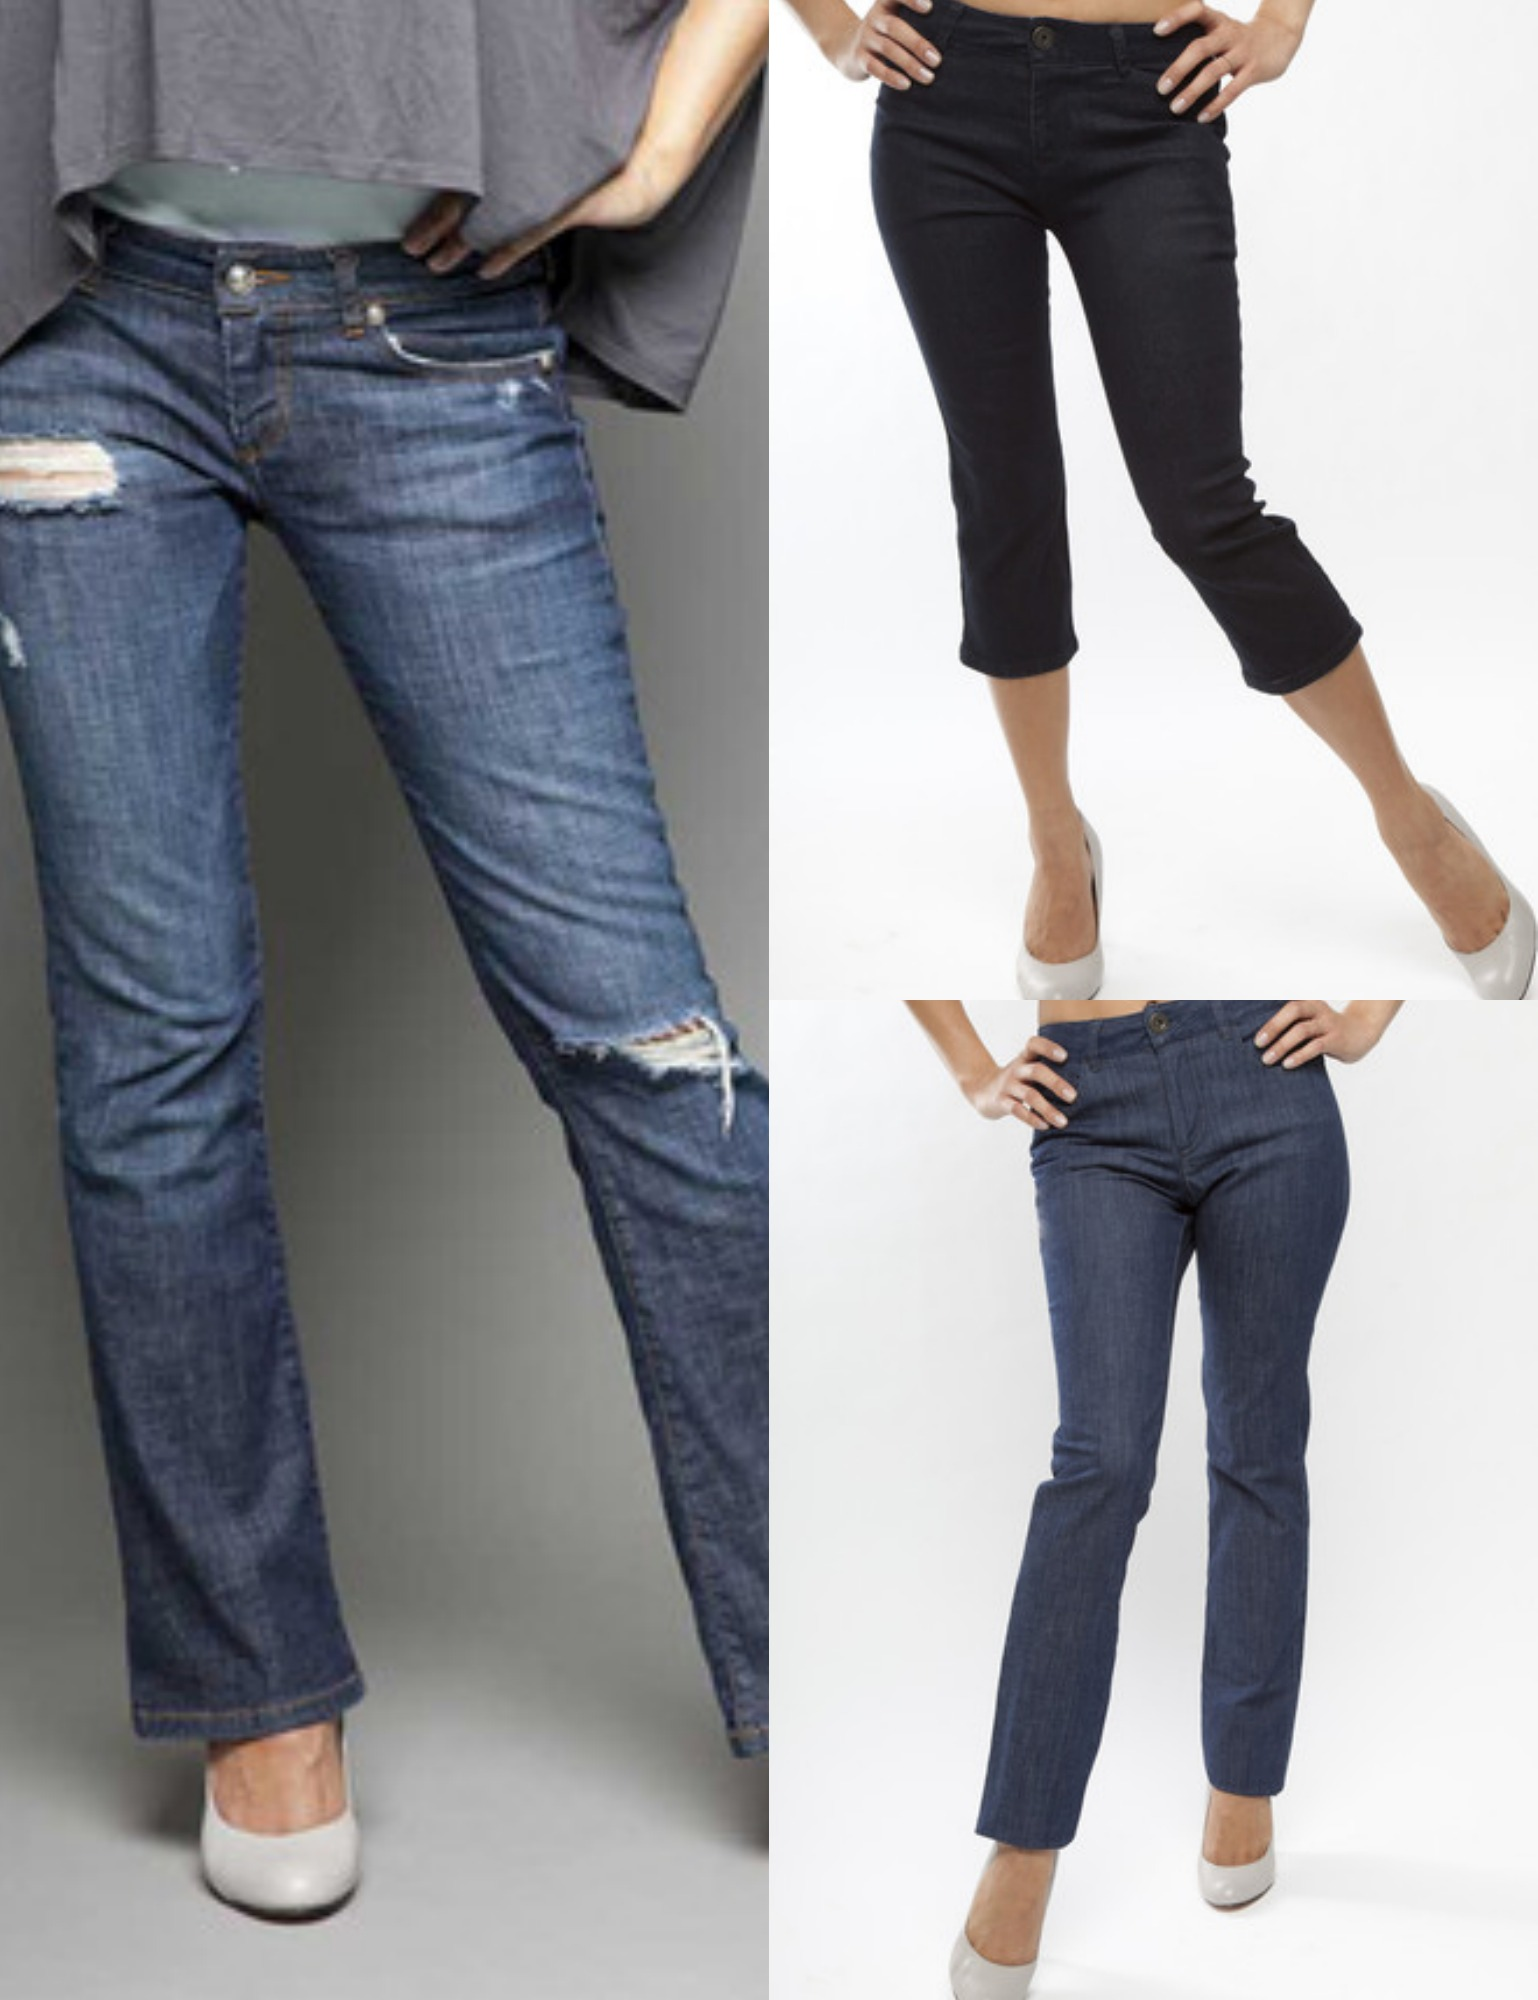 Wearable Fashion Trends With Denim For Petite Women - Bella Petite